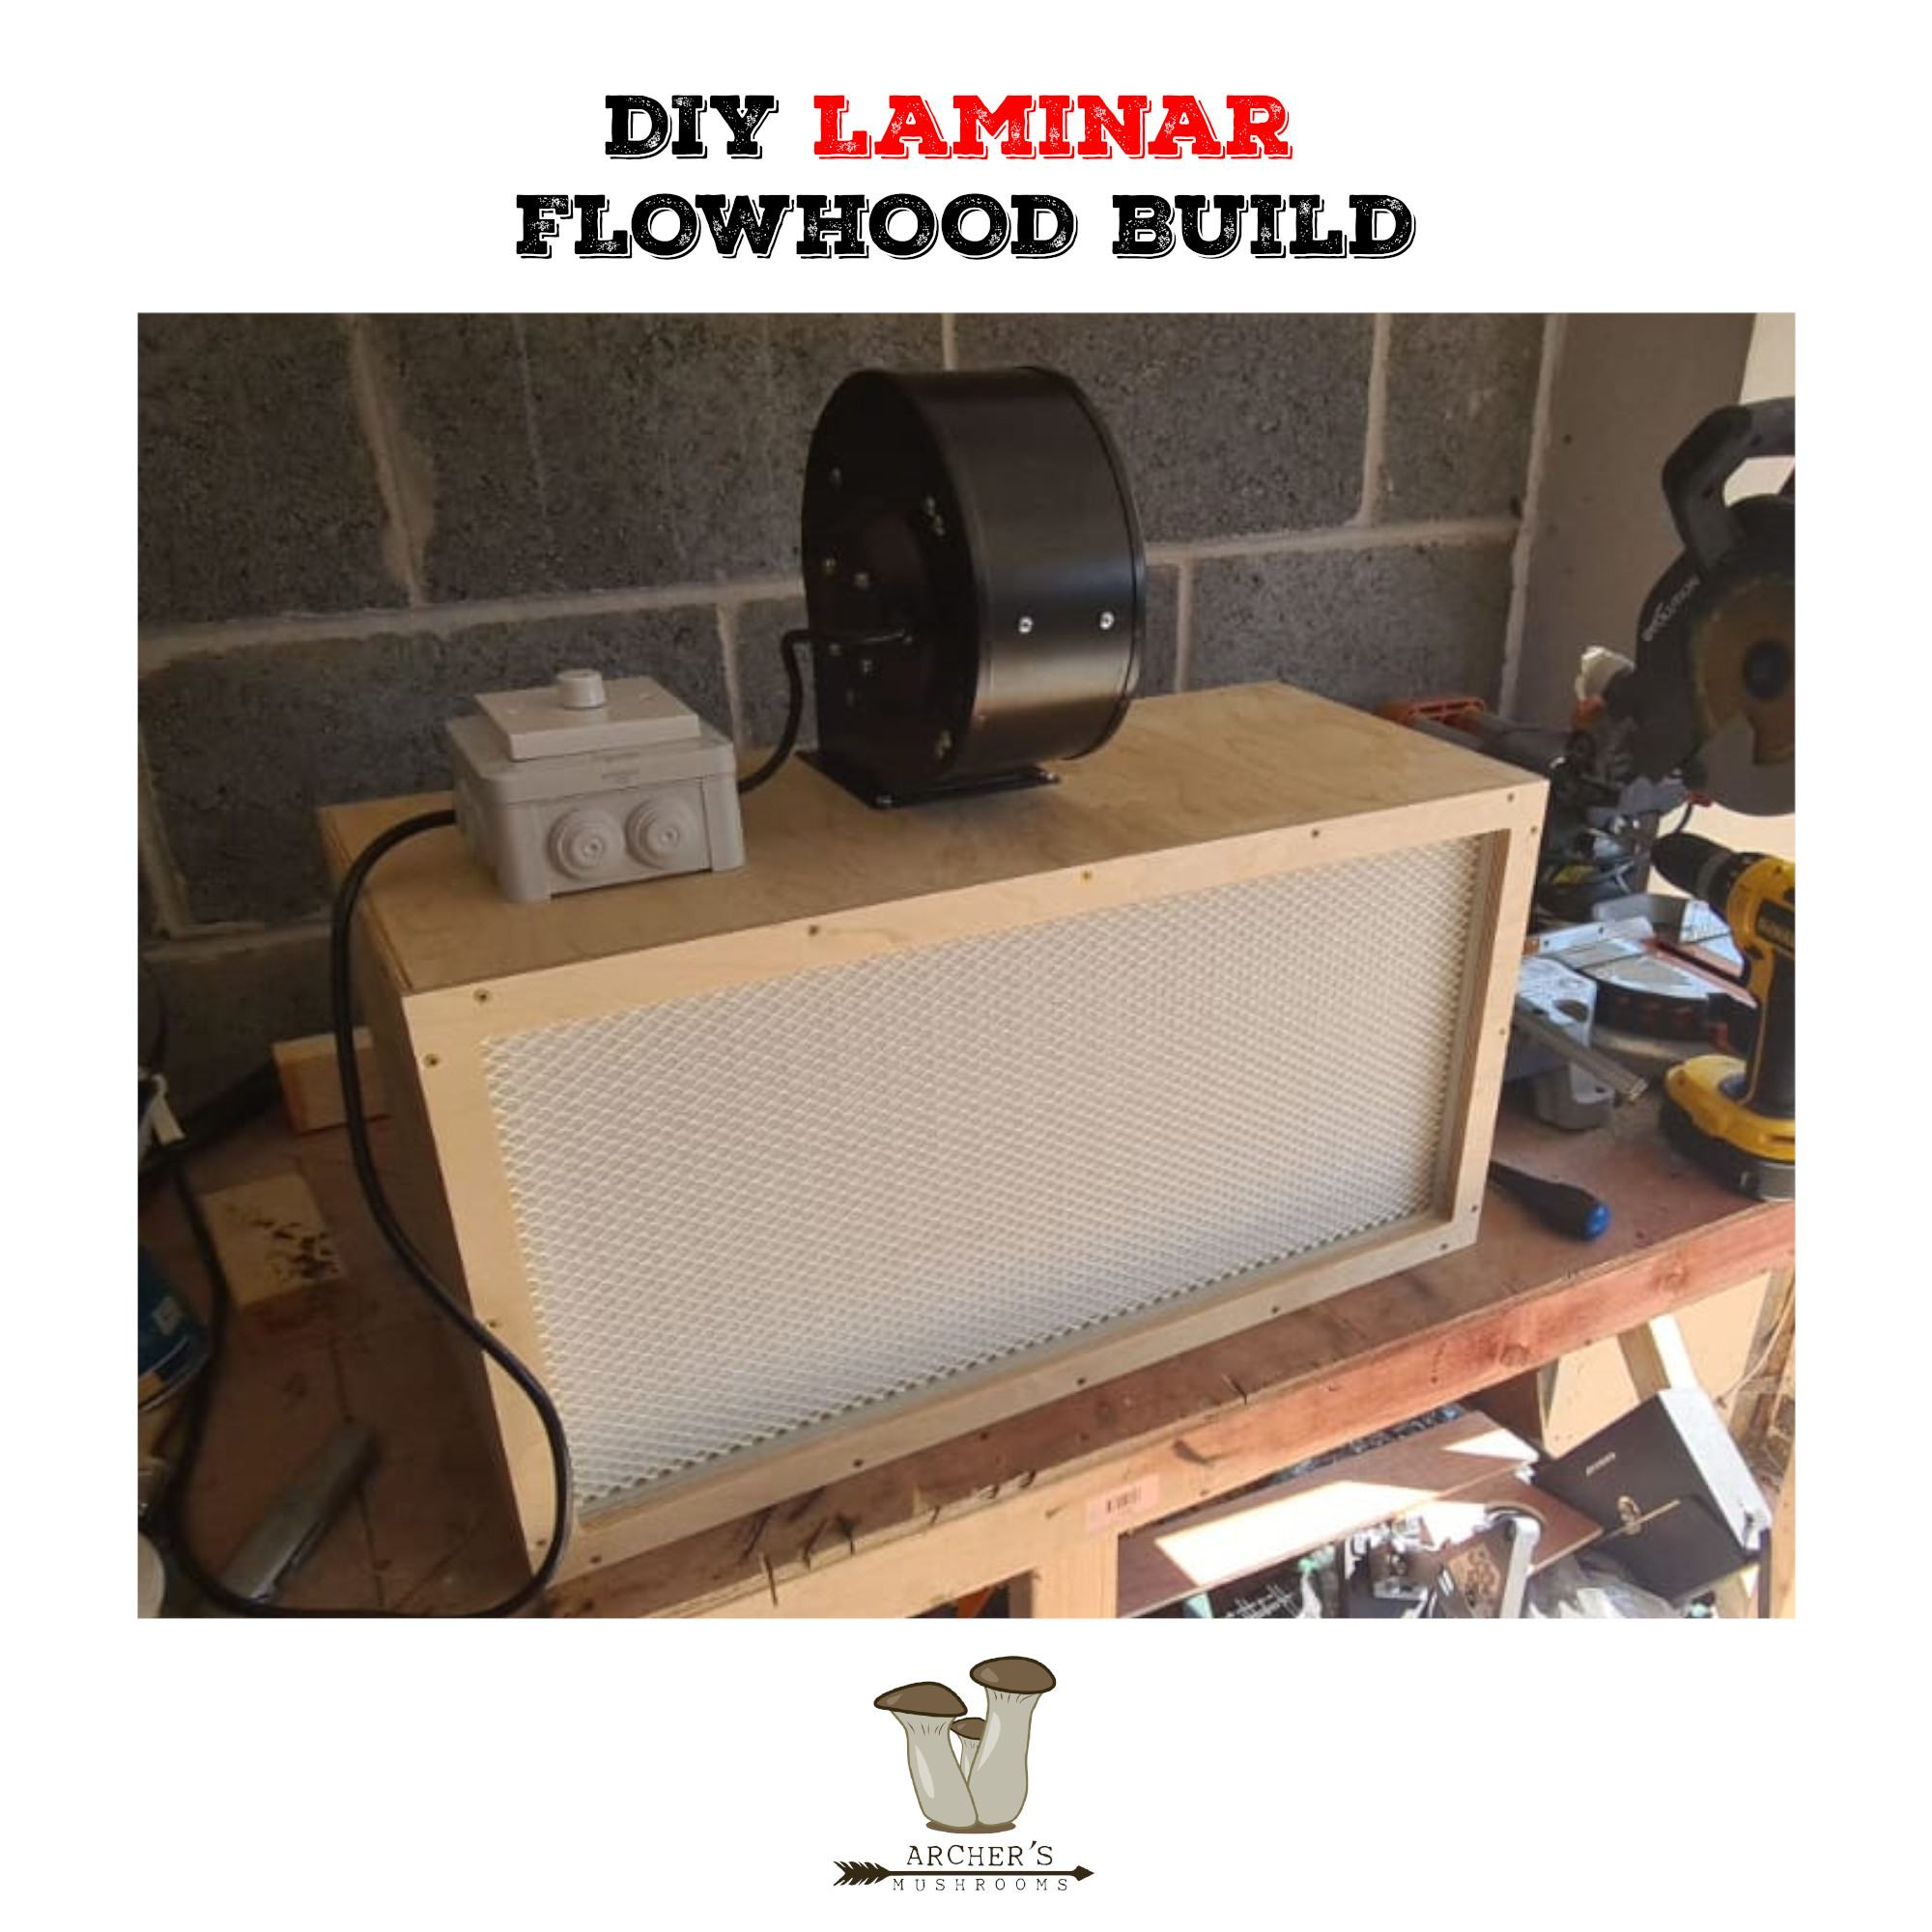 FFU UK | Laminar Flow Hood UK | How To Make A Laminar Flow Hood | DIY Laminar Flow Hood | Mushroom Growing | Mushroom Blogs | Mushroom Growing | Mushroom Tips | Mushroom Business